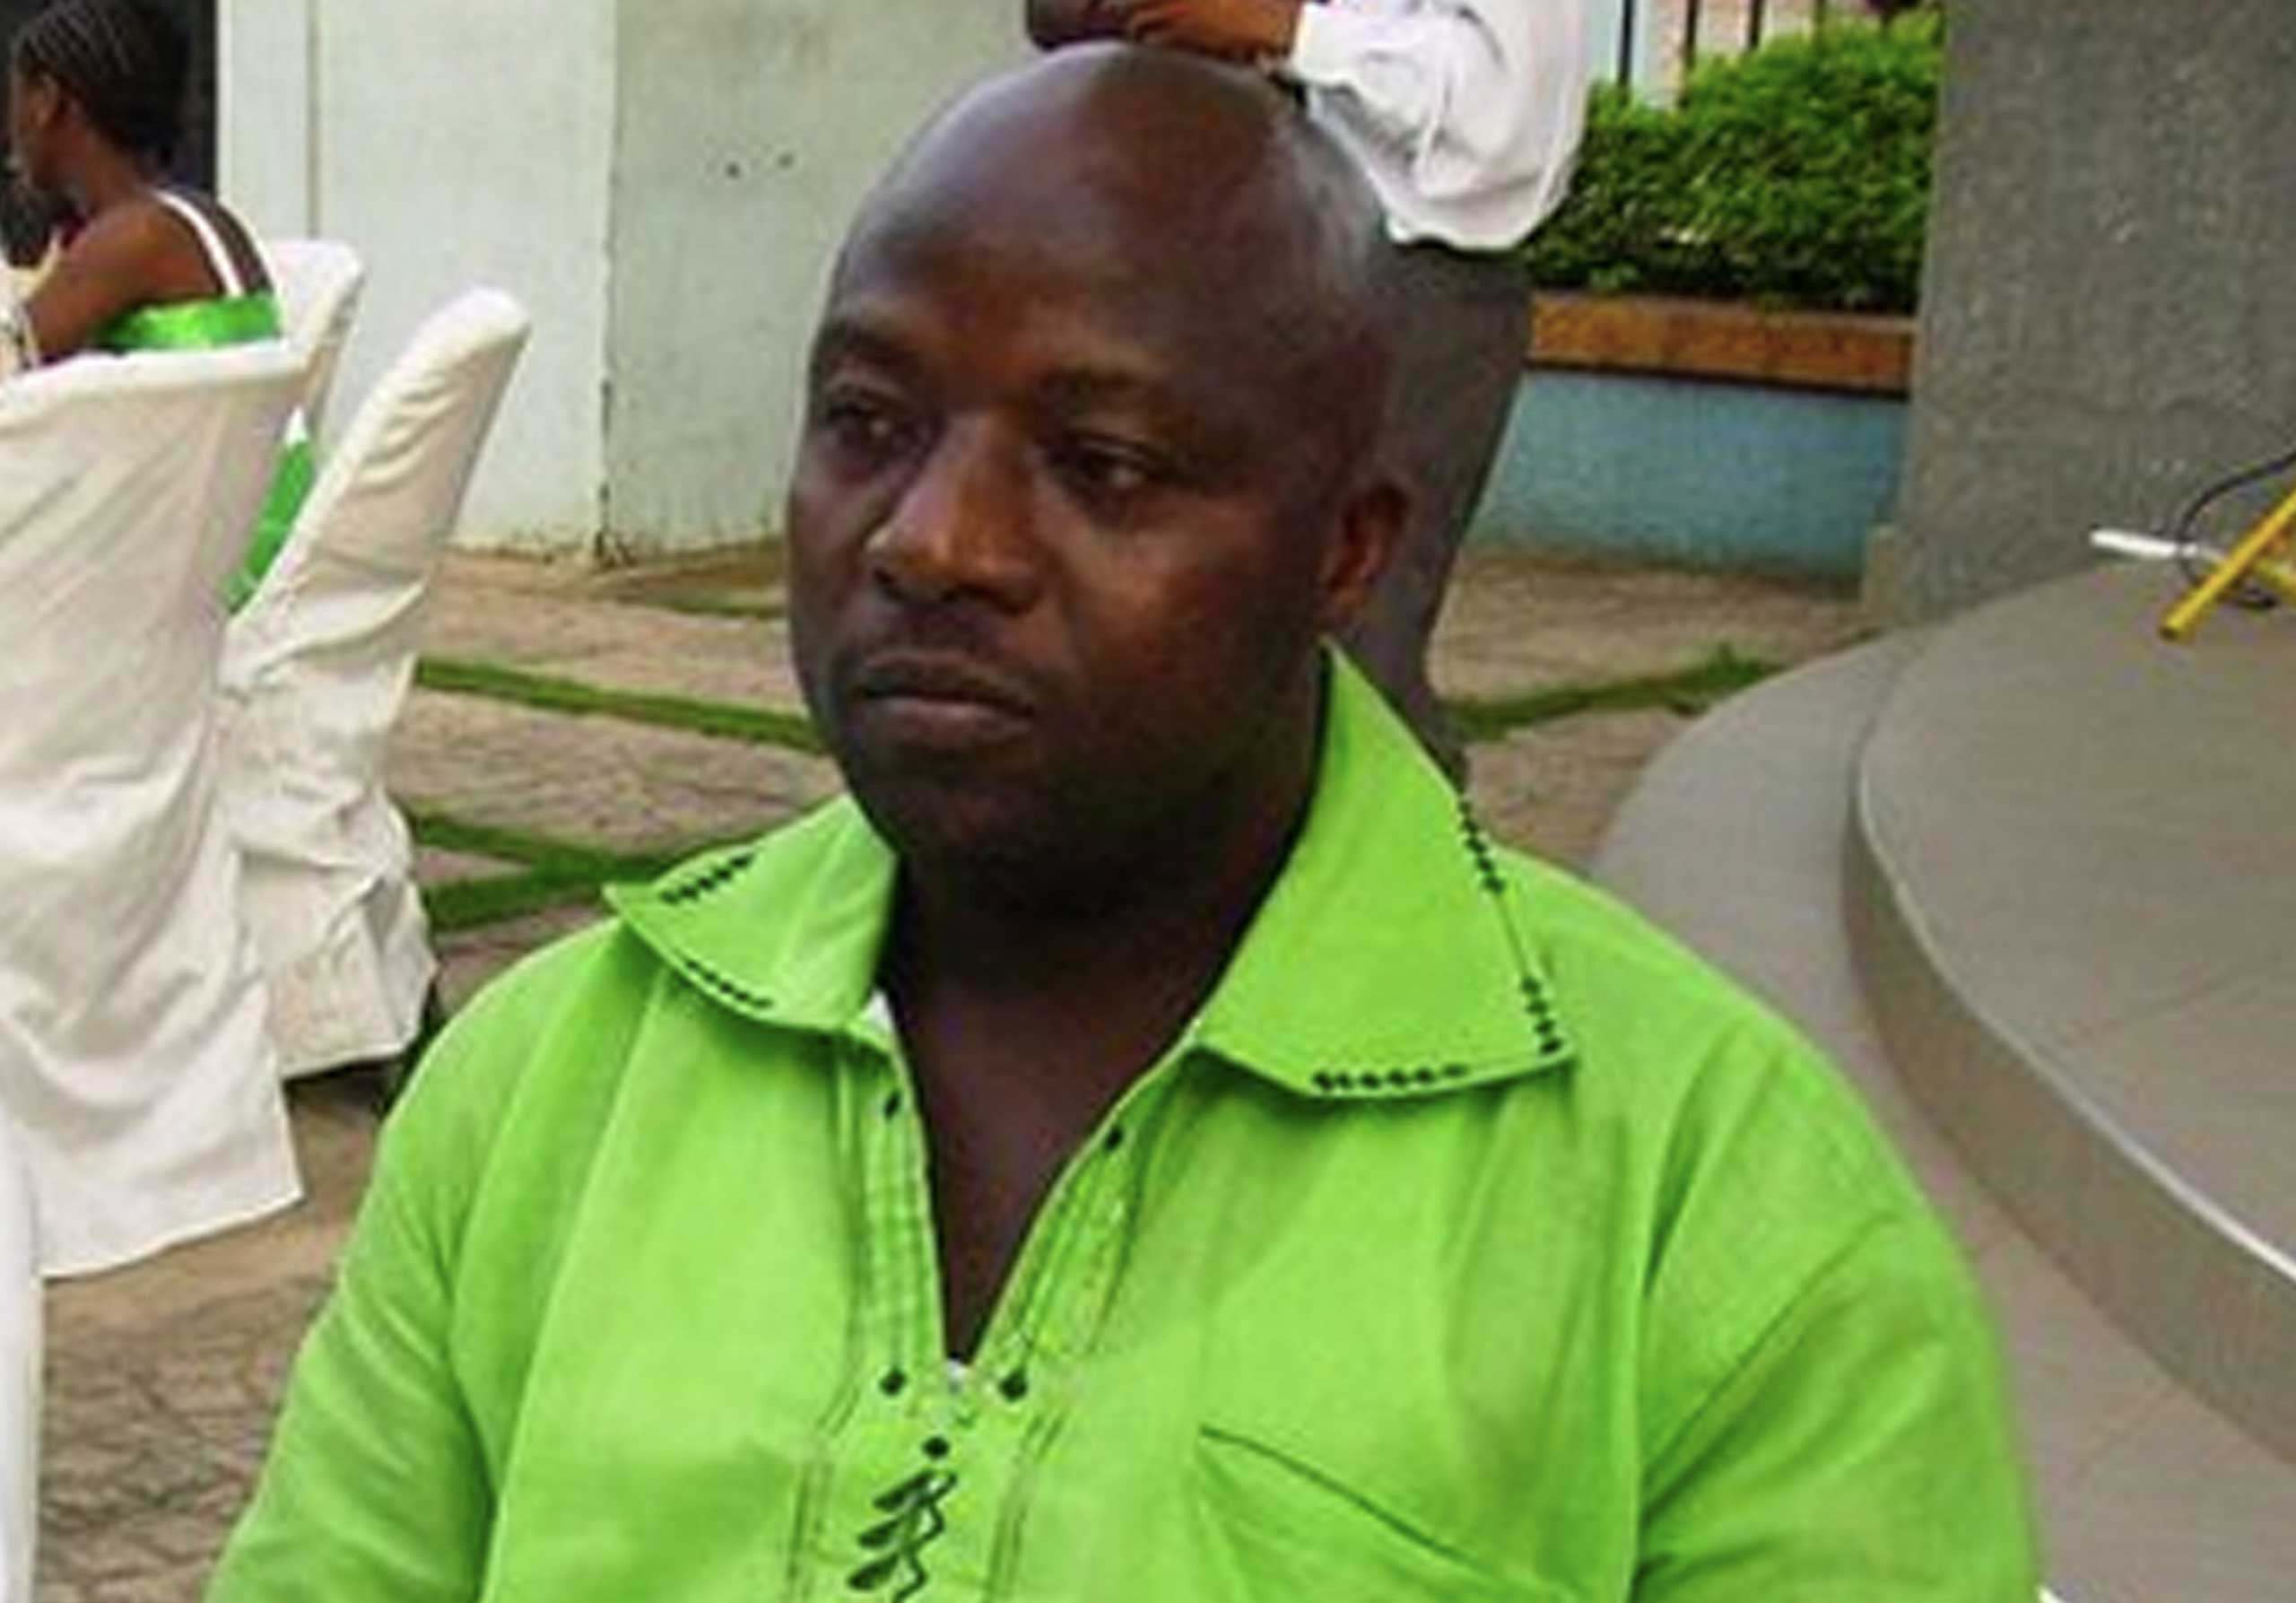 Thomas Eric Duncan, the first Ebola patient diagnosed in the U.S., at a wedding in Ghana in 2011.